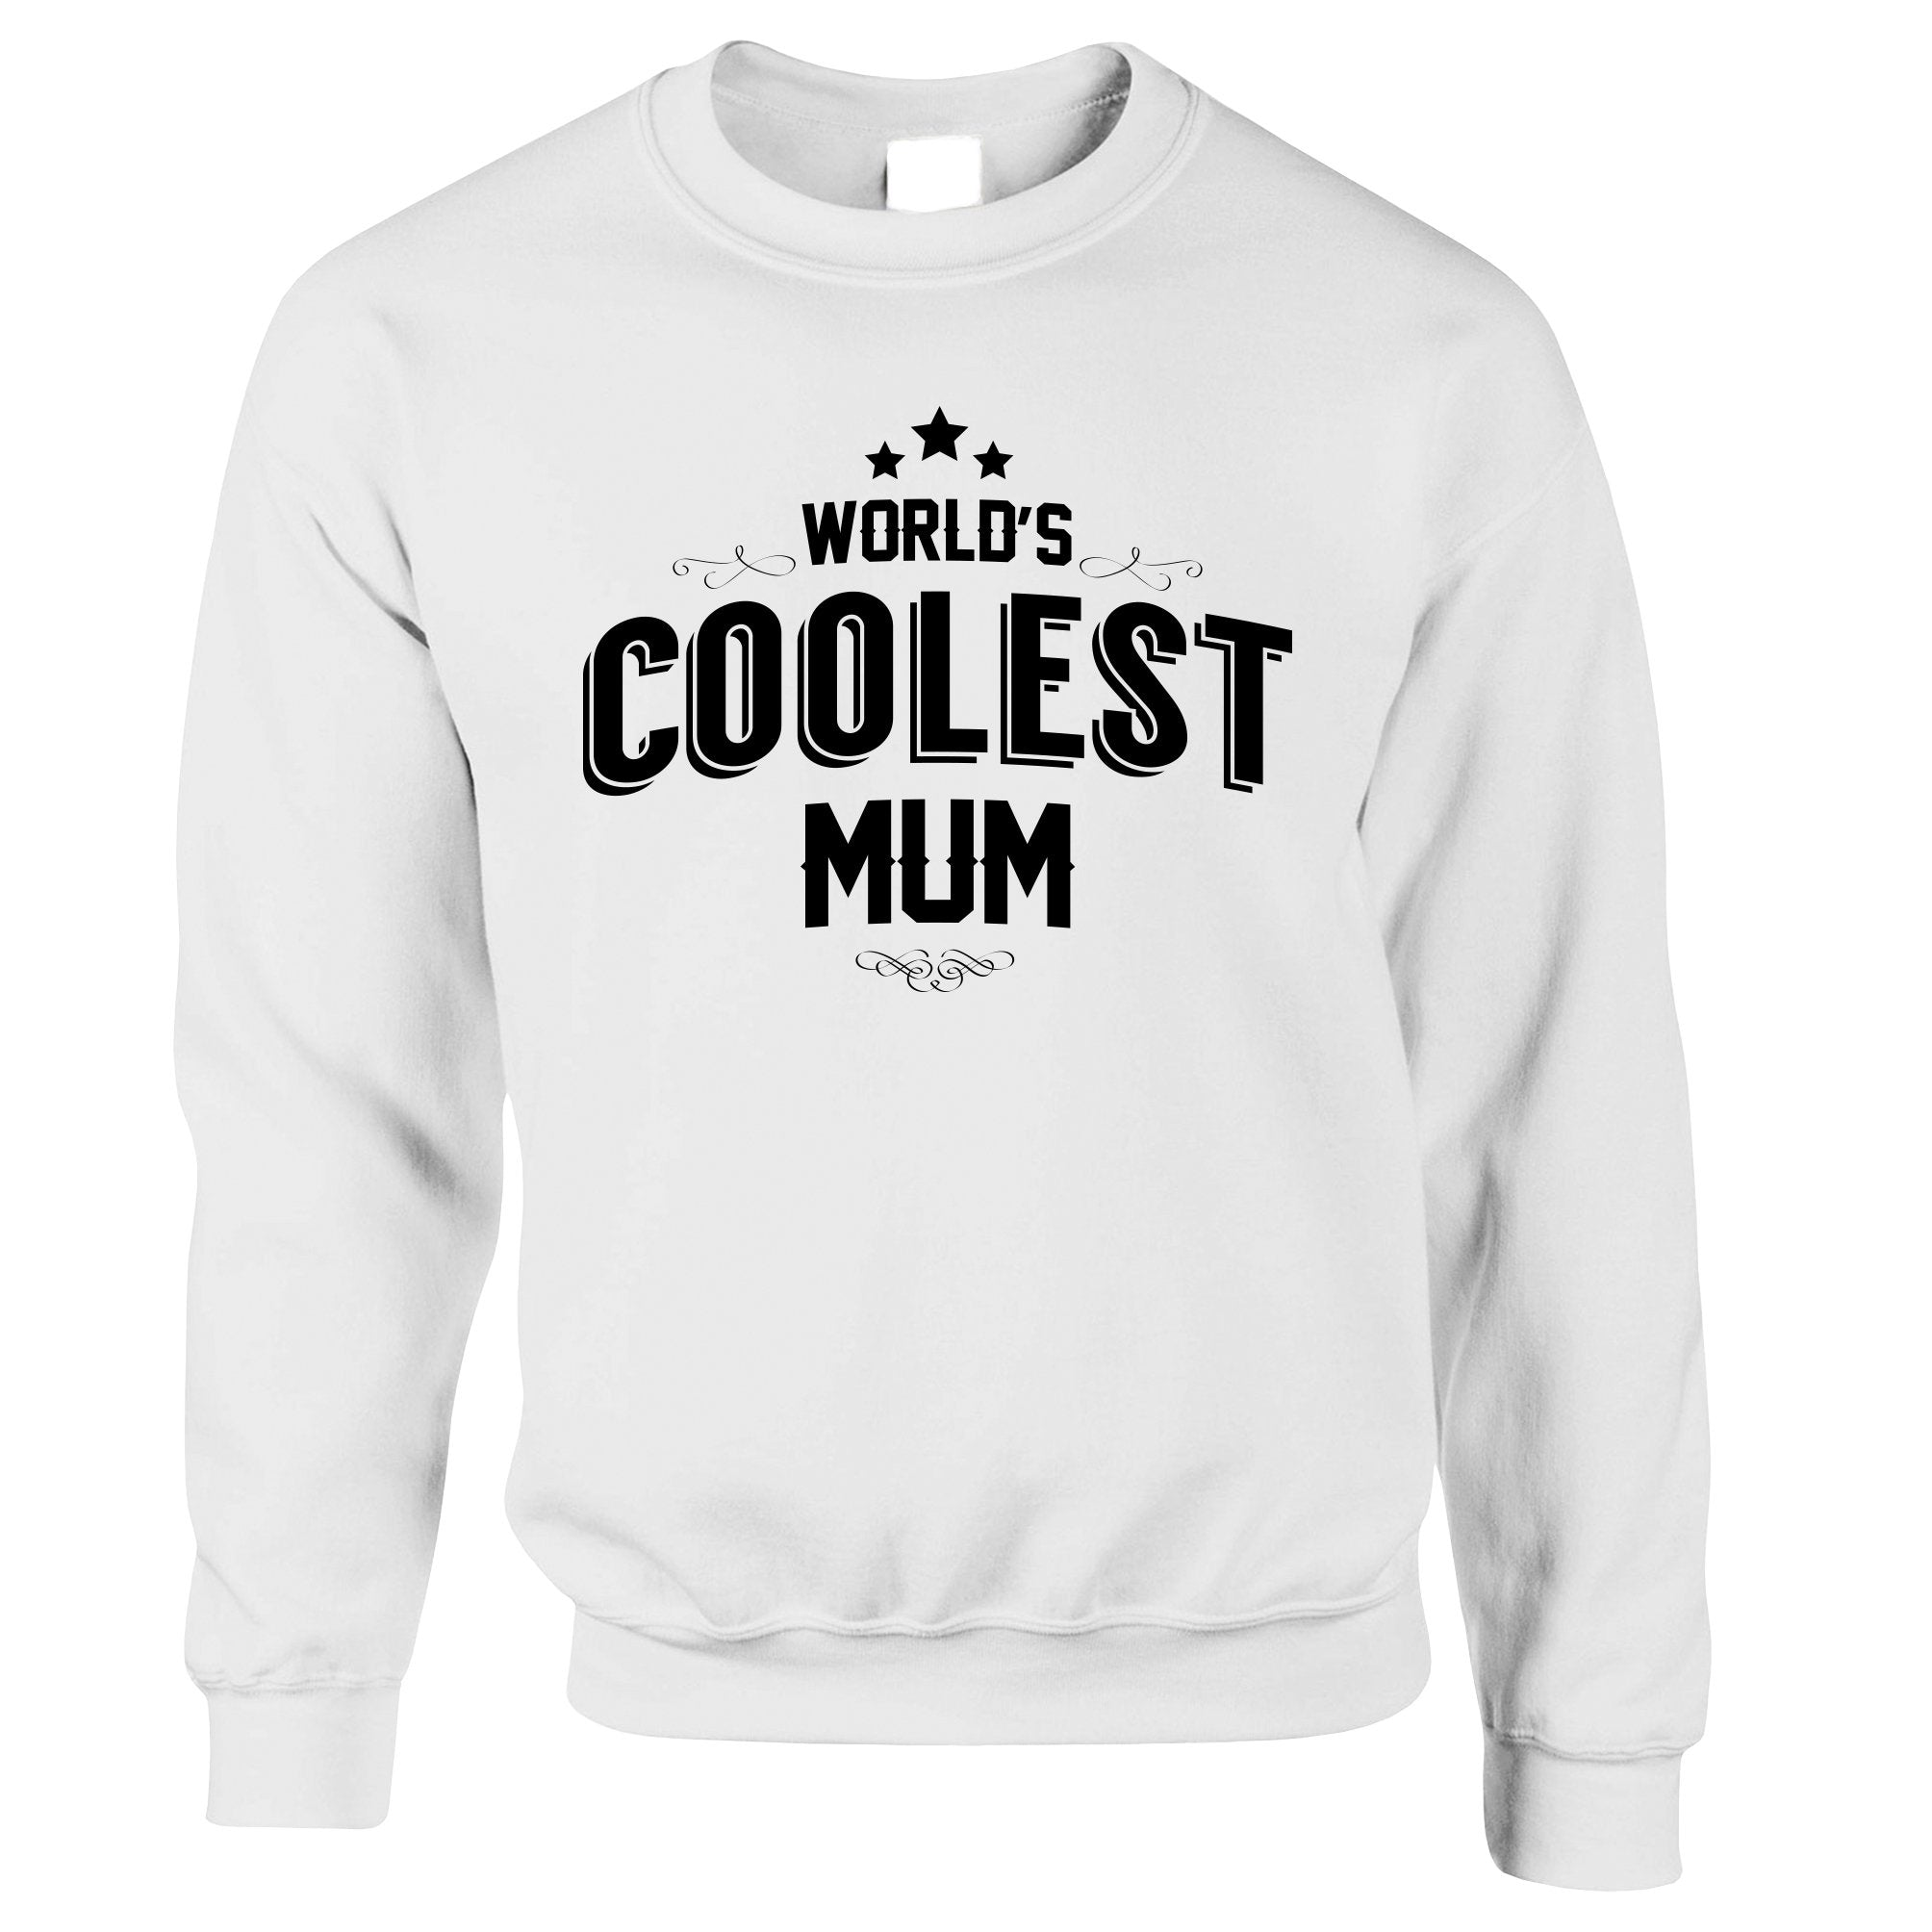 Novelty Jumper Worlds Coolest Mum Slogan Sweatshirt Sweater